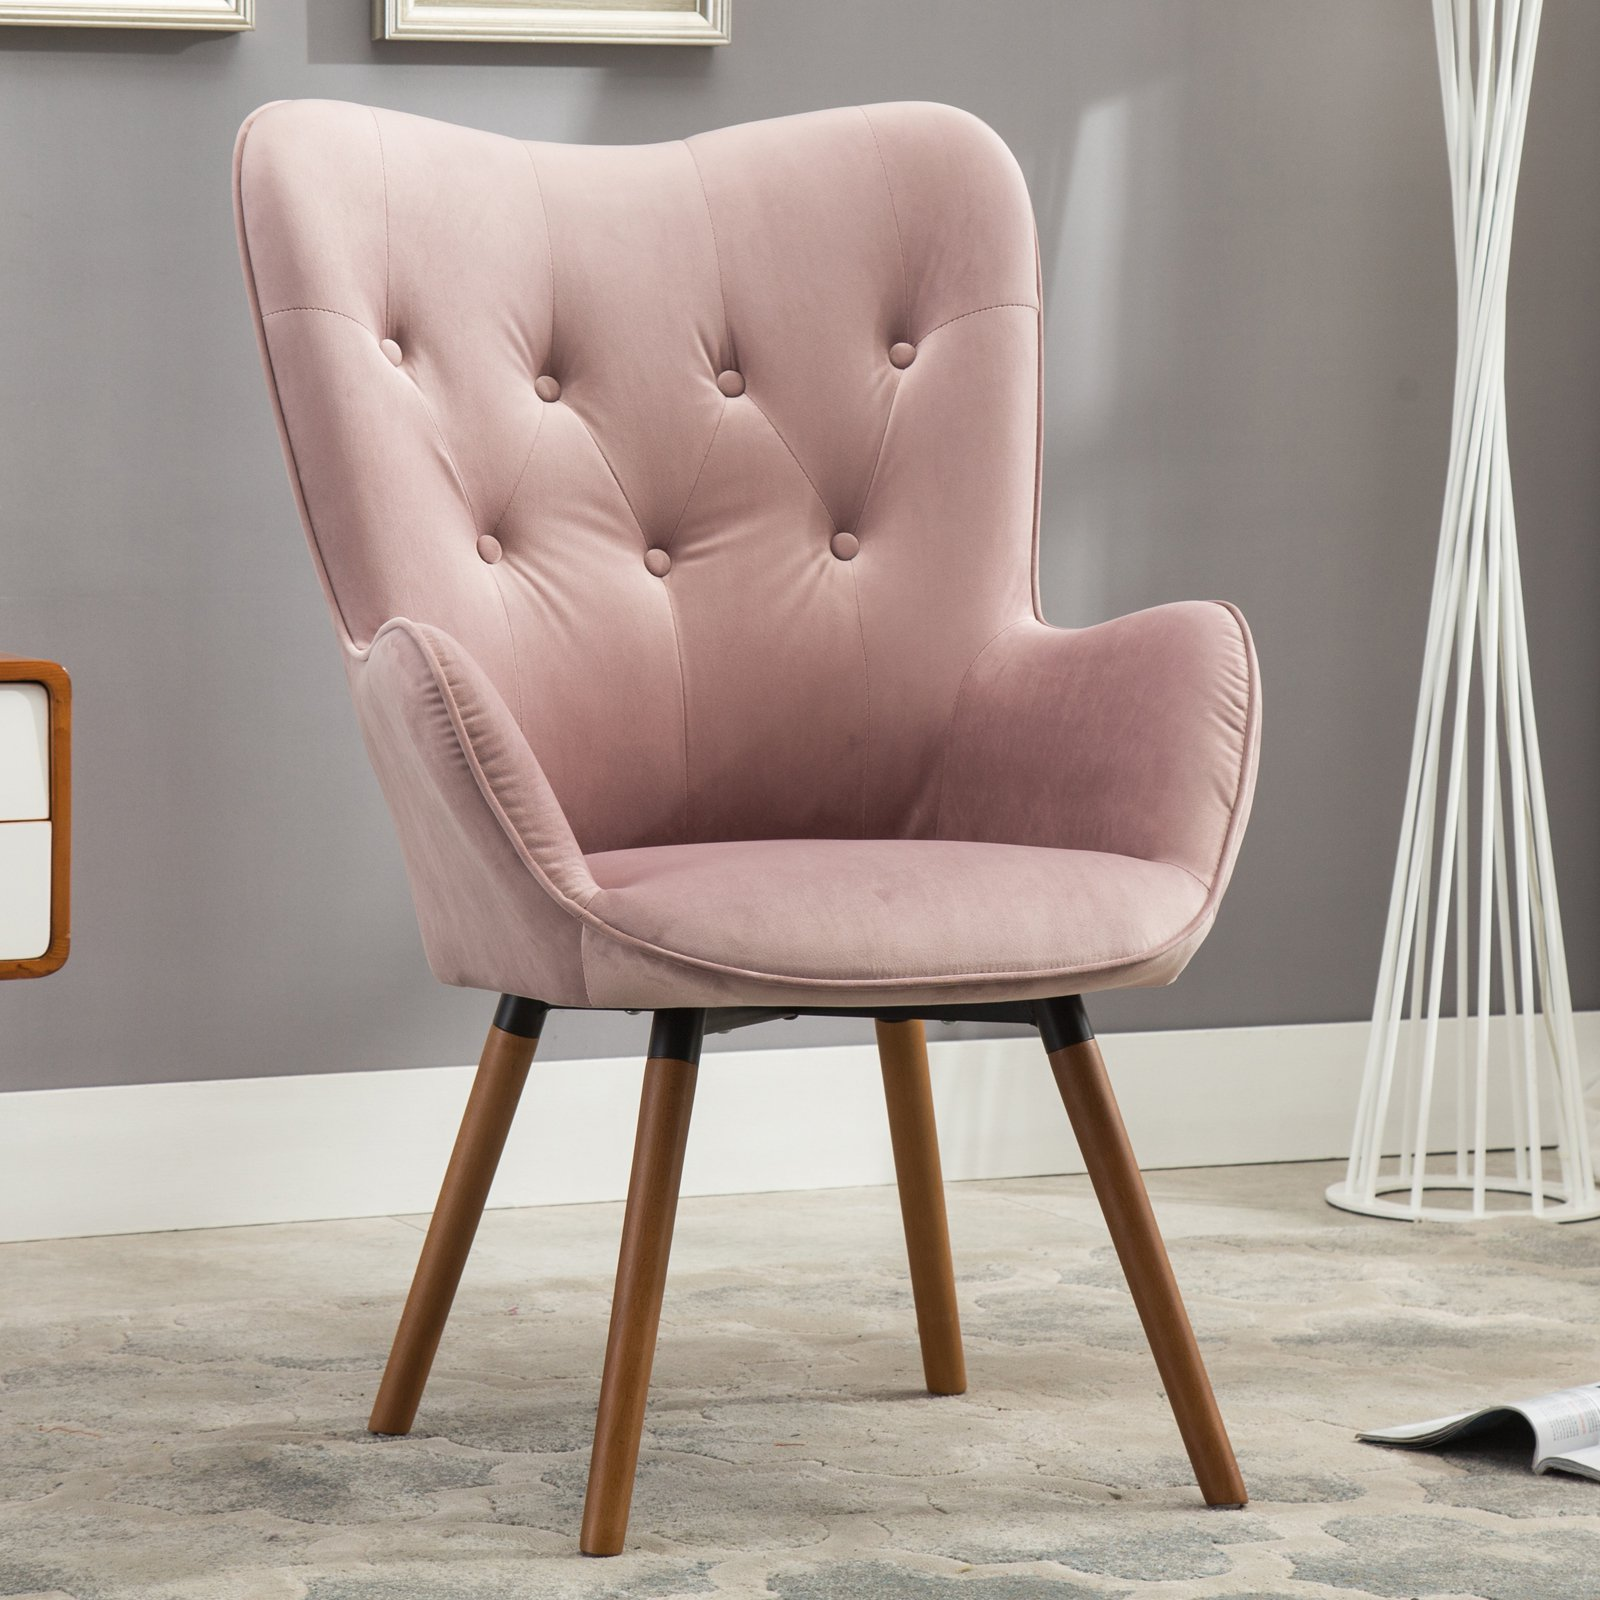 Roundhill Furniture Doarnin Contemporary Silky Velvet Tufted Button Back Accent Chair, Mauve by Roundhill Furniture